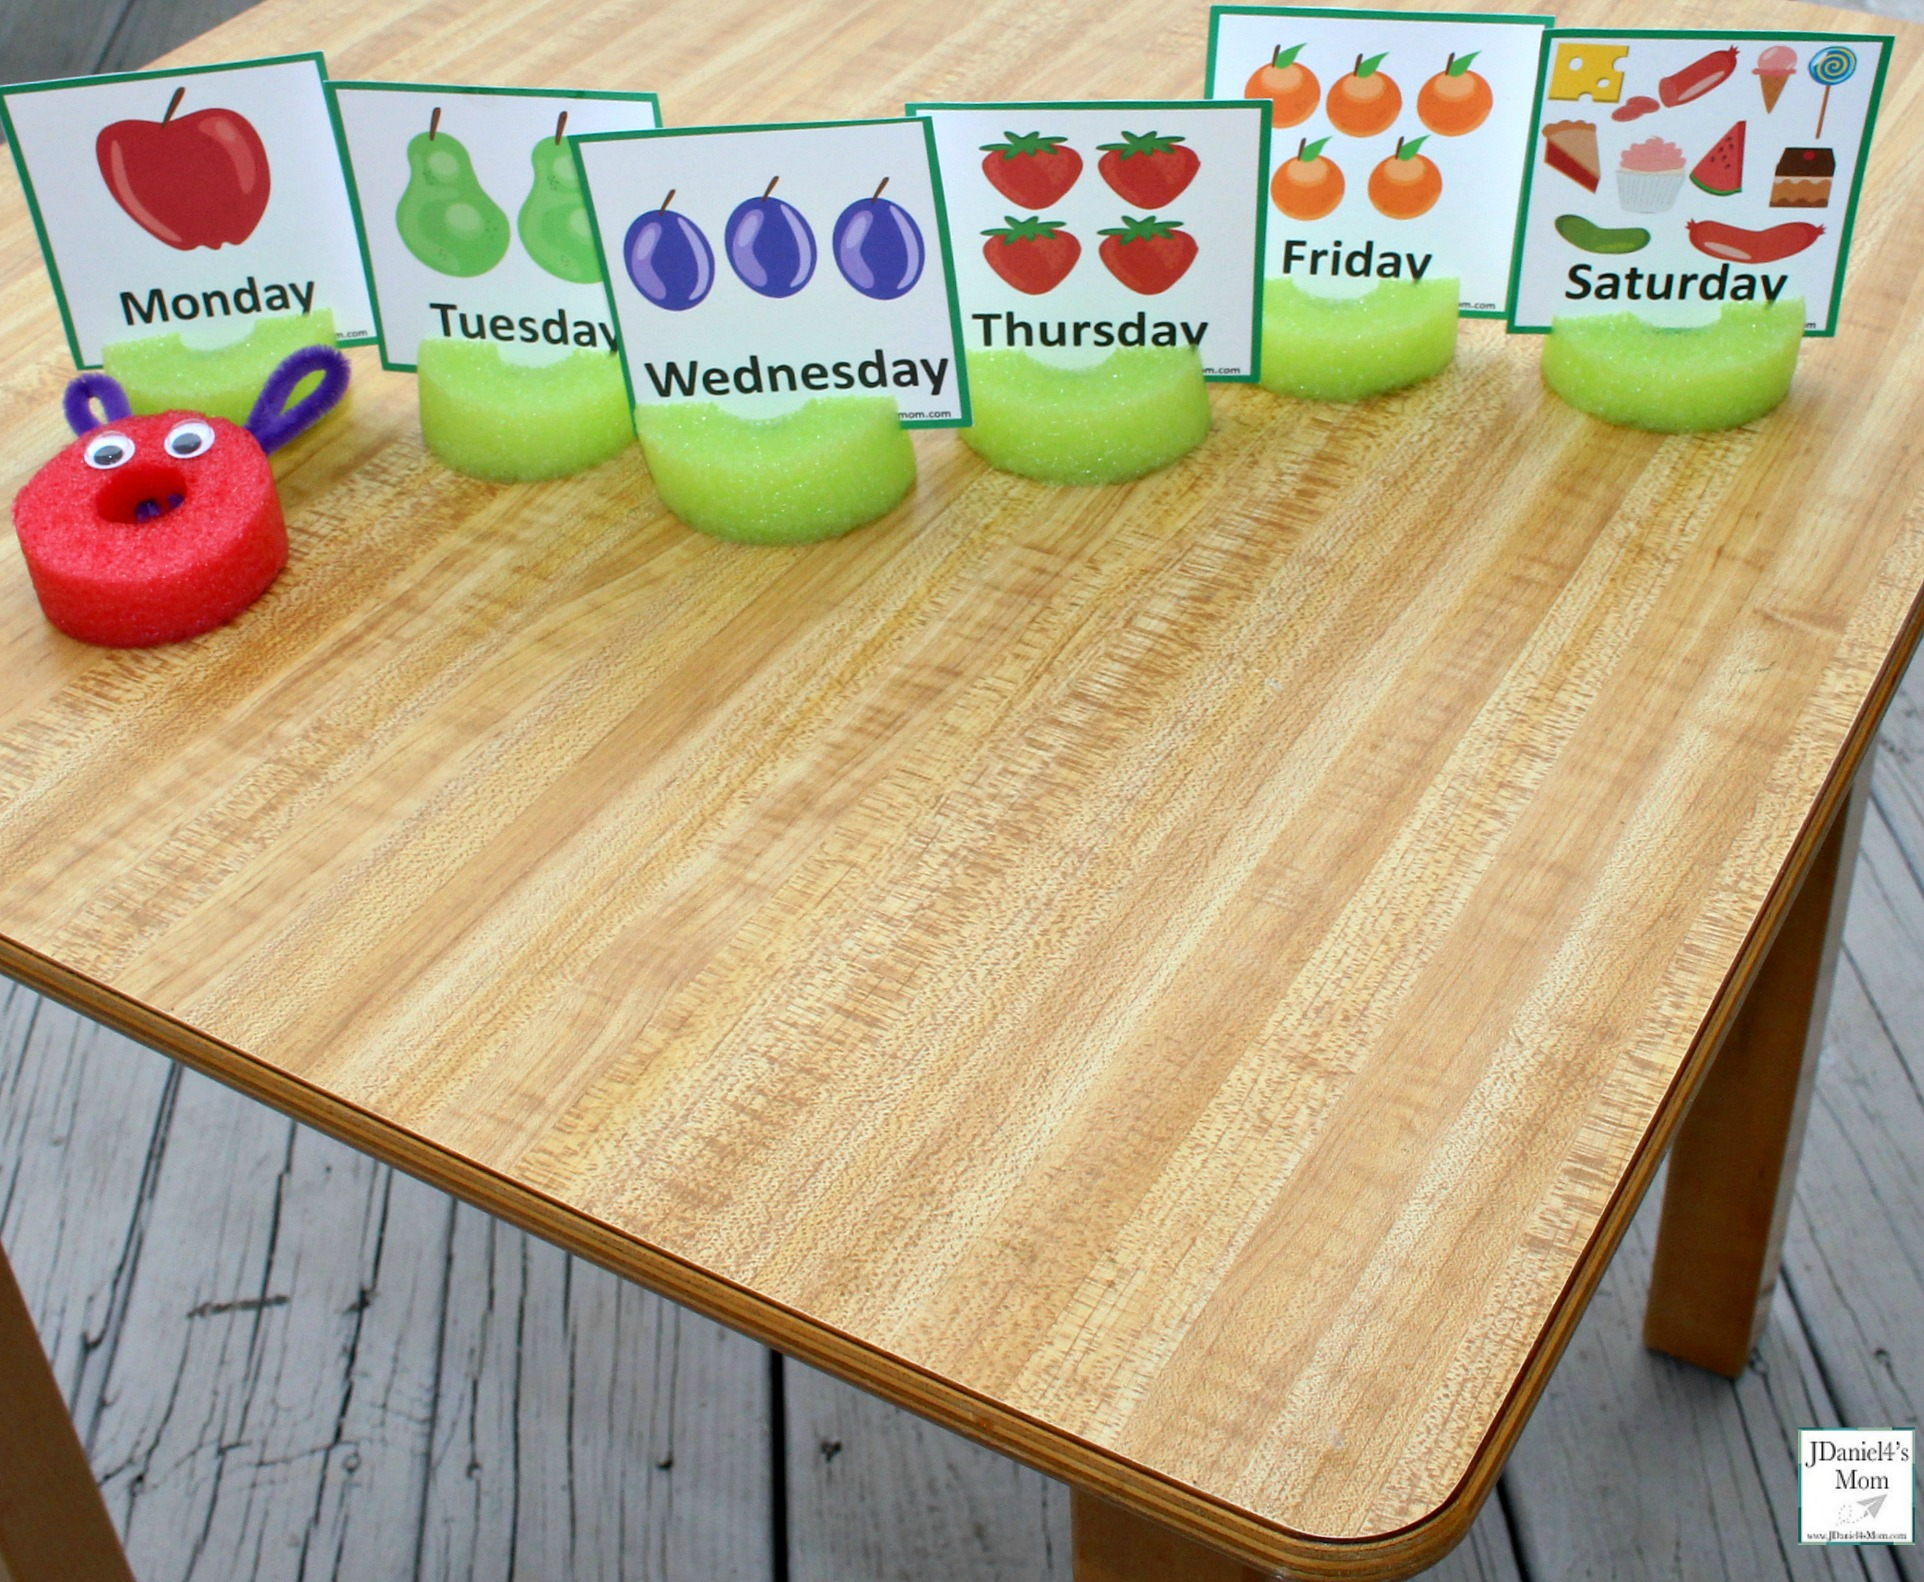 The Very Hungry Caterpillar Number Sequencing Activities